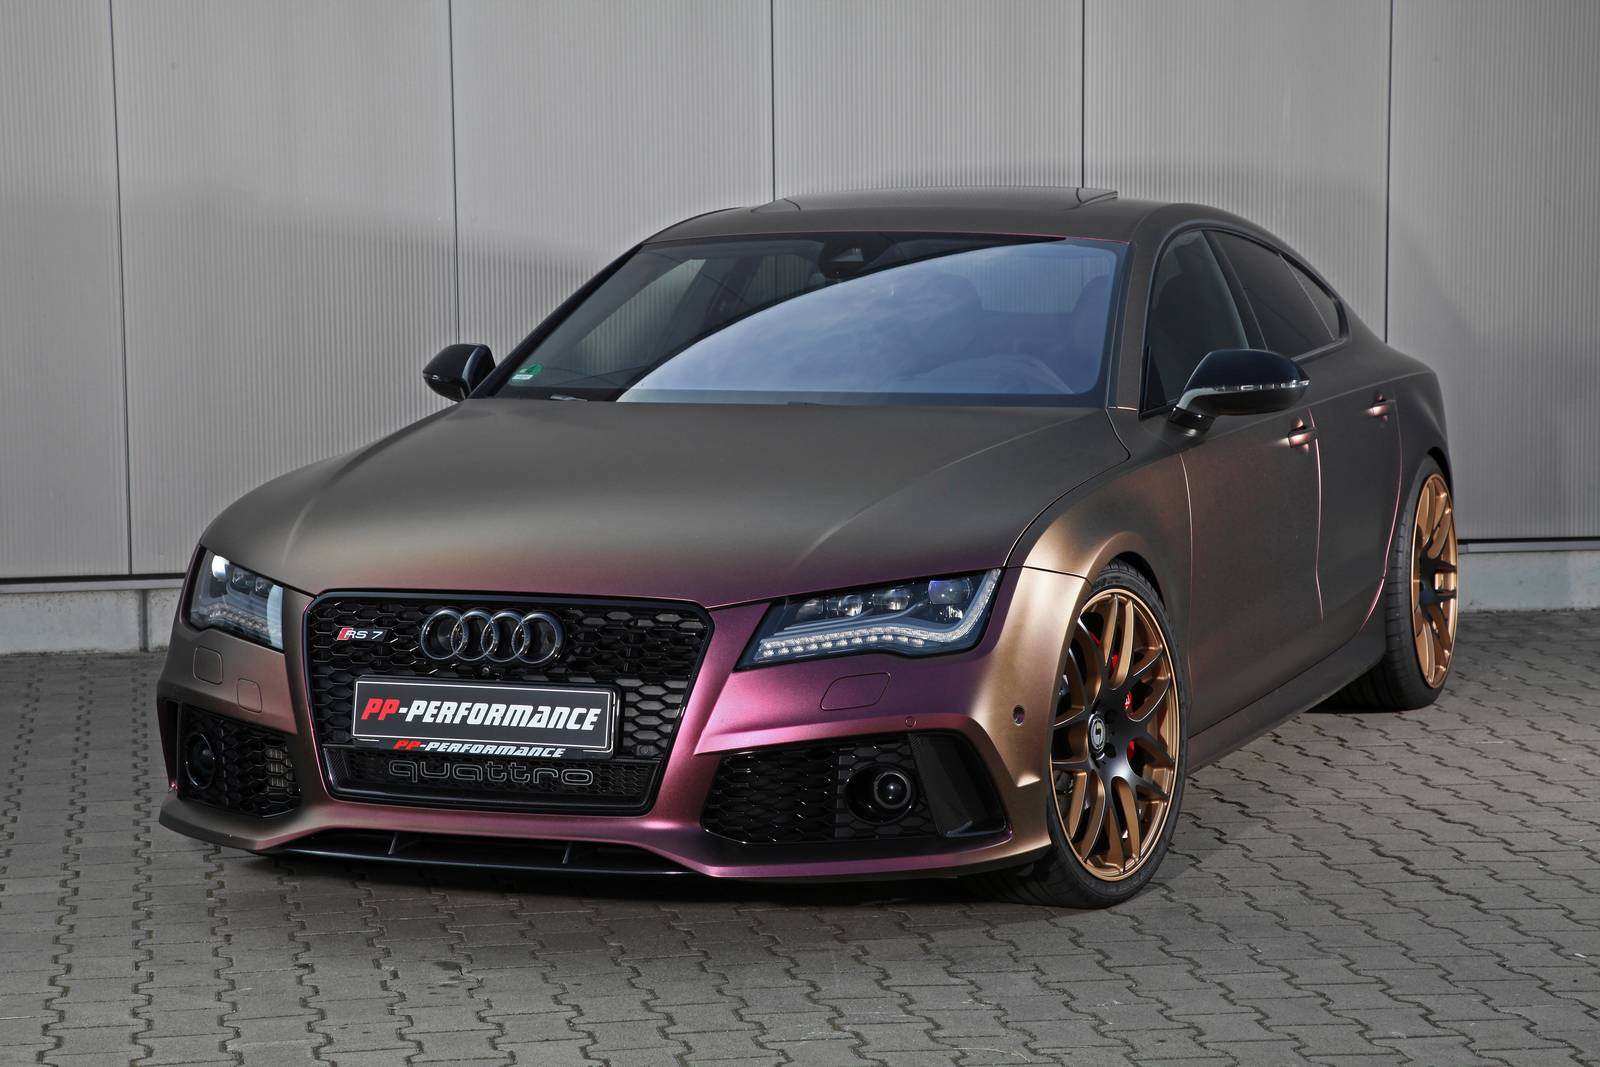 Sparkling Berry Wrapped Audi Rs7 With 745hp By Pp